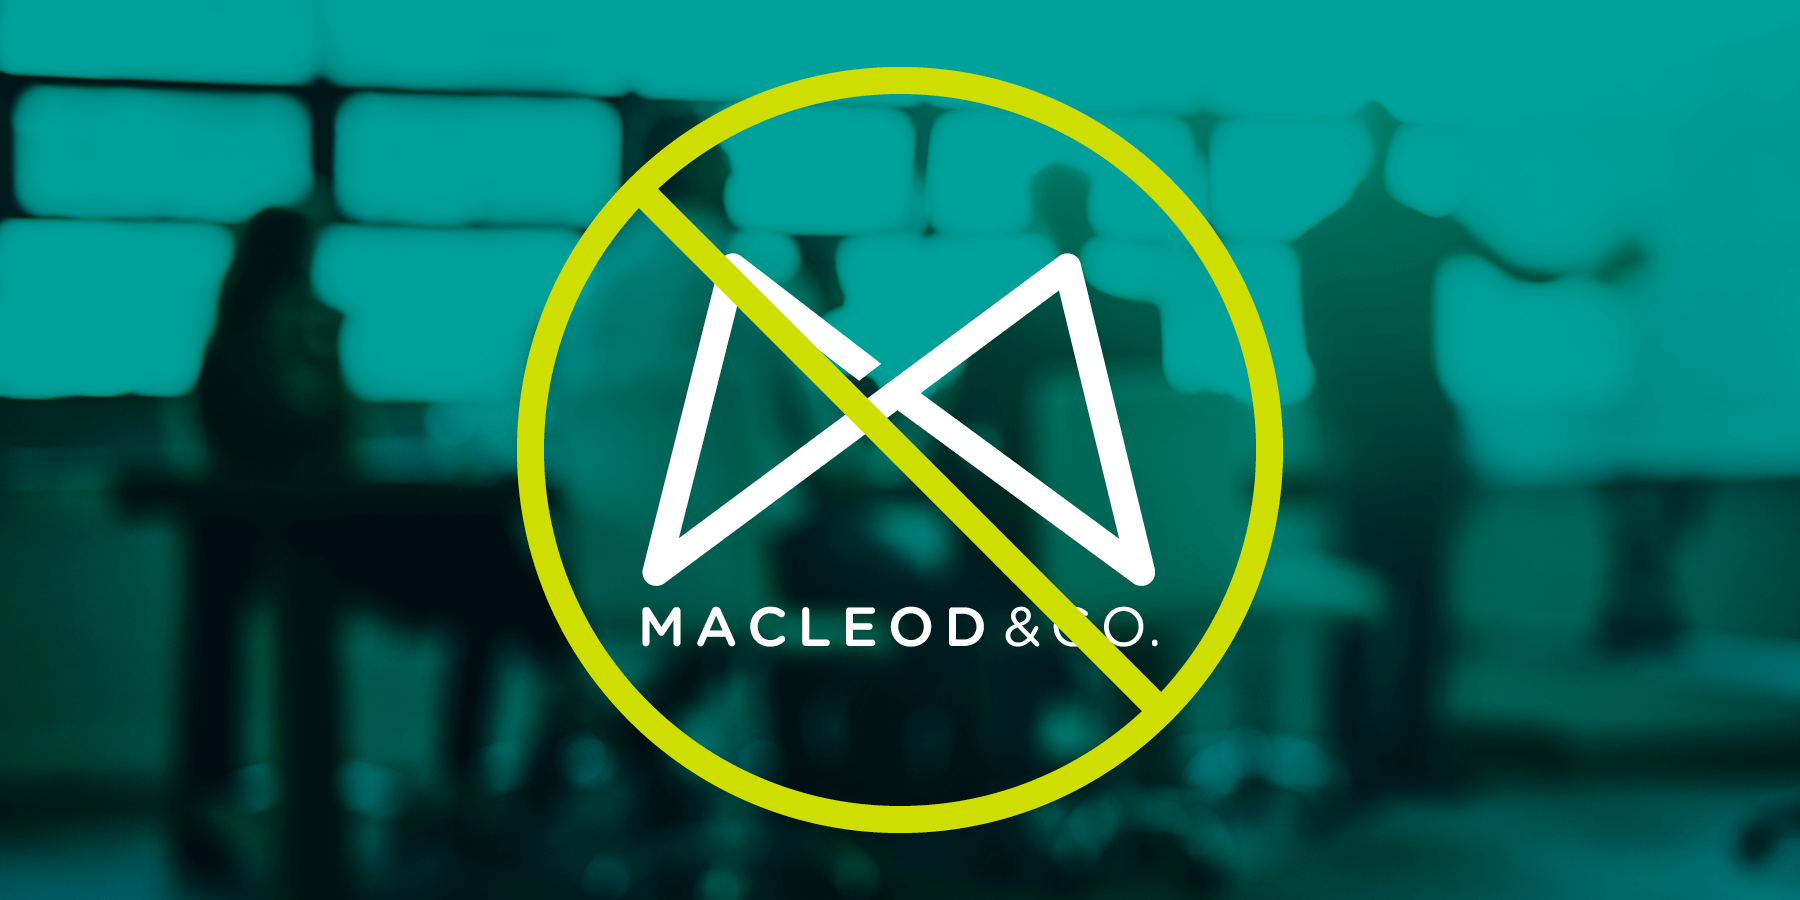 5 Reasons Not To Work With Macleod & Co.